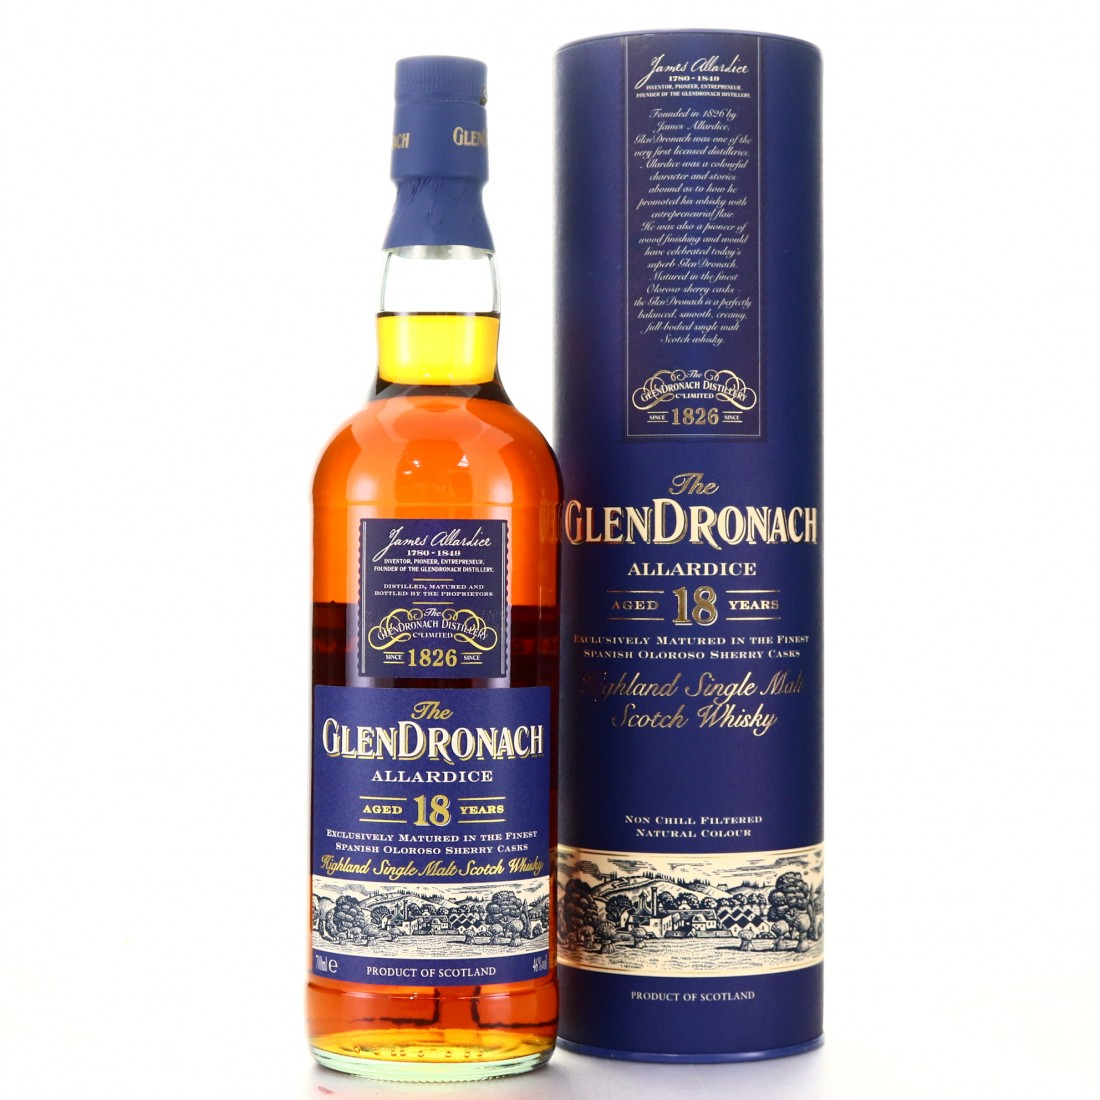 Glendronach 18 Year Old Allardice / 2009 Release